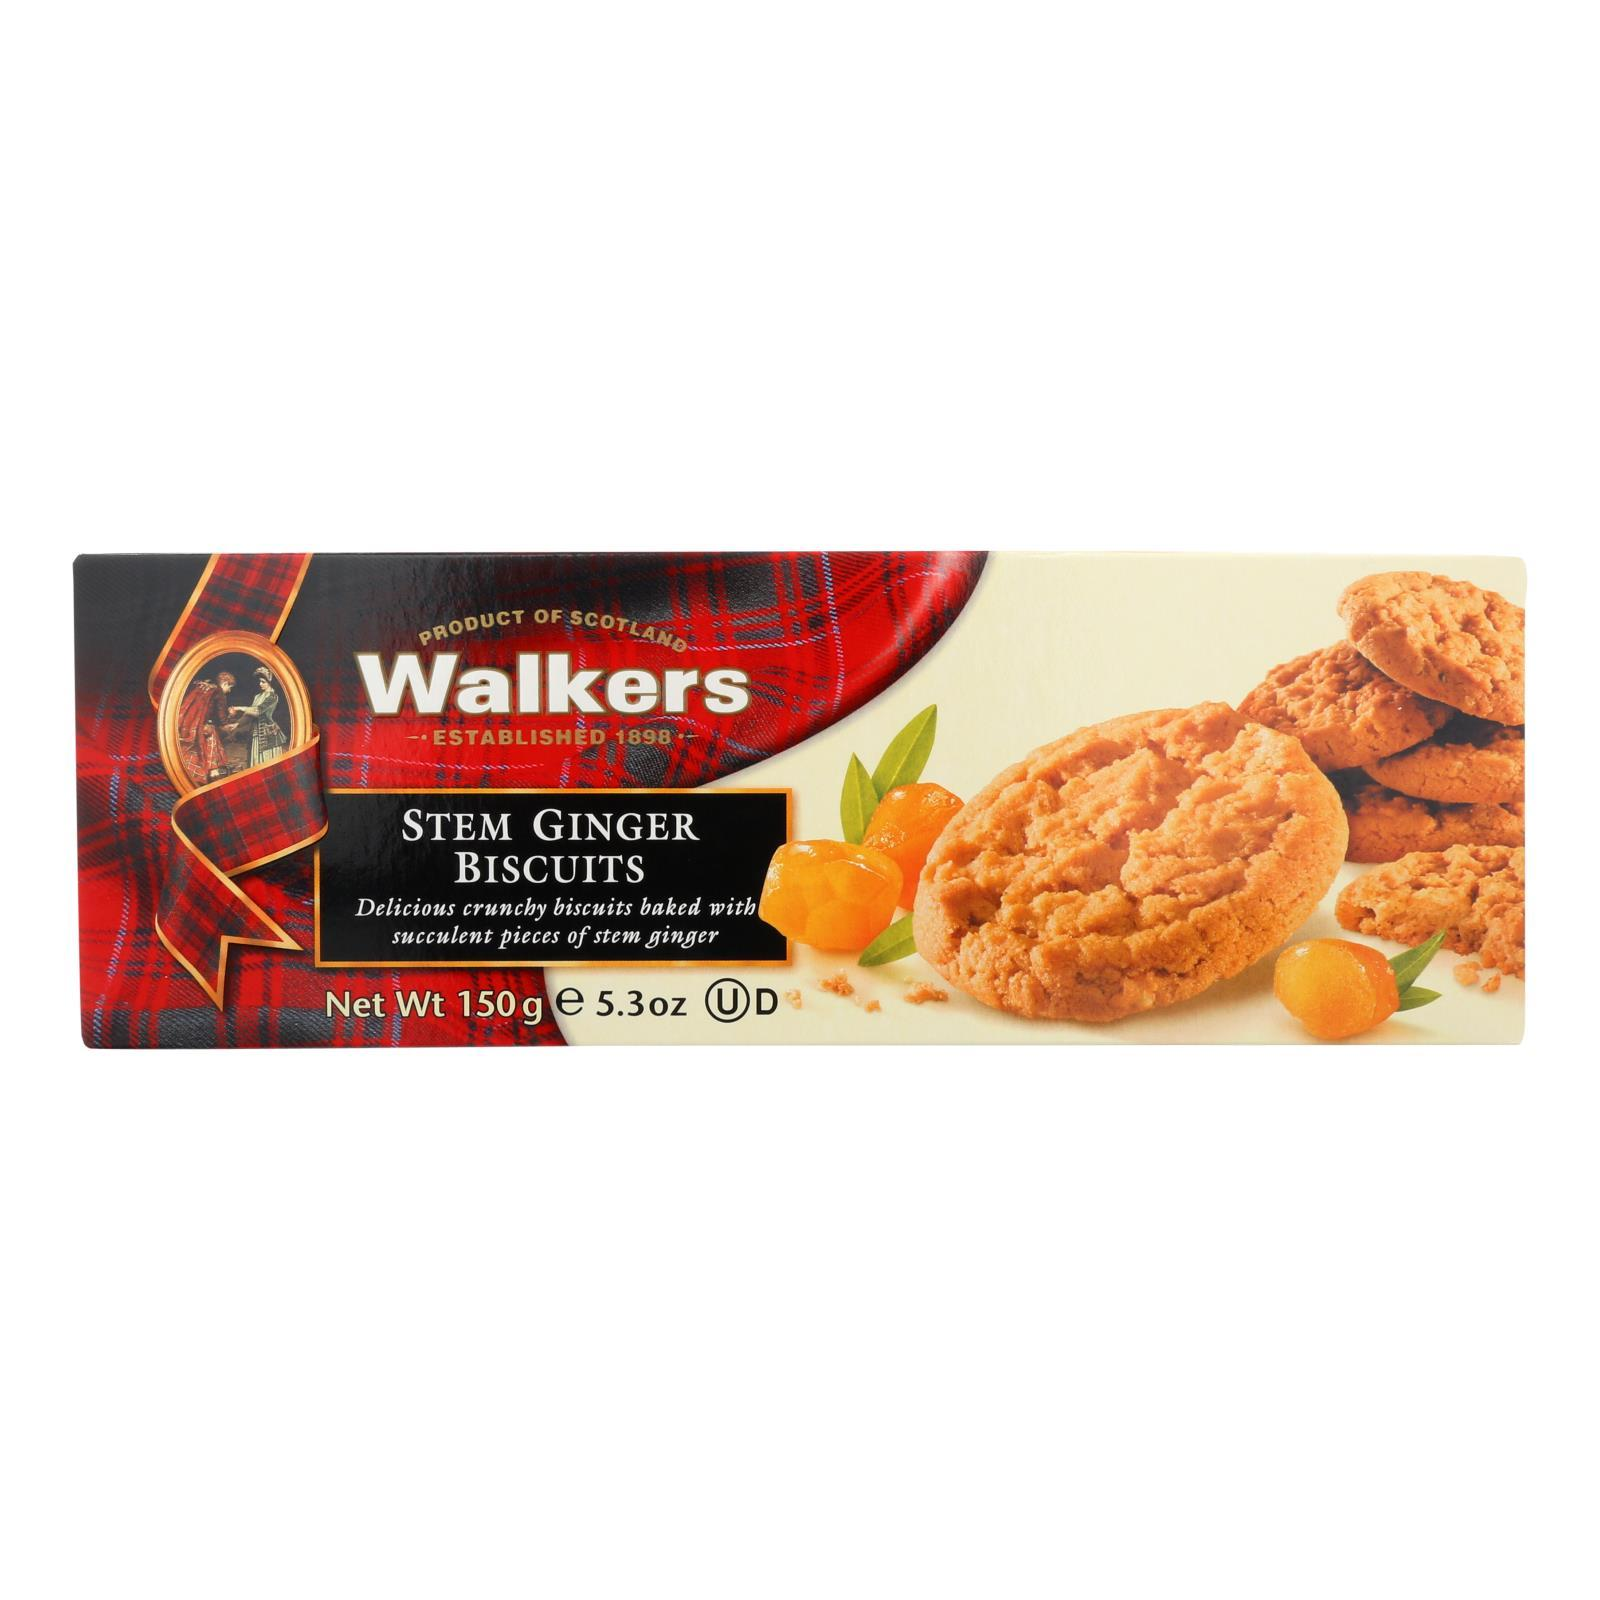 Walkers Shortbread Biscuits - Stem Ginger And Chocolate - Case Of 12 - 5.3 Oz. - BeeGreen